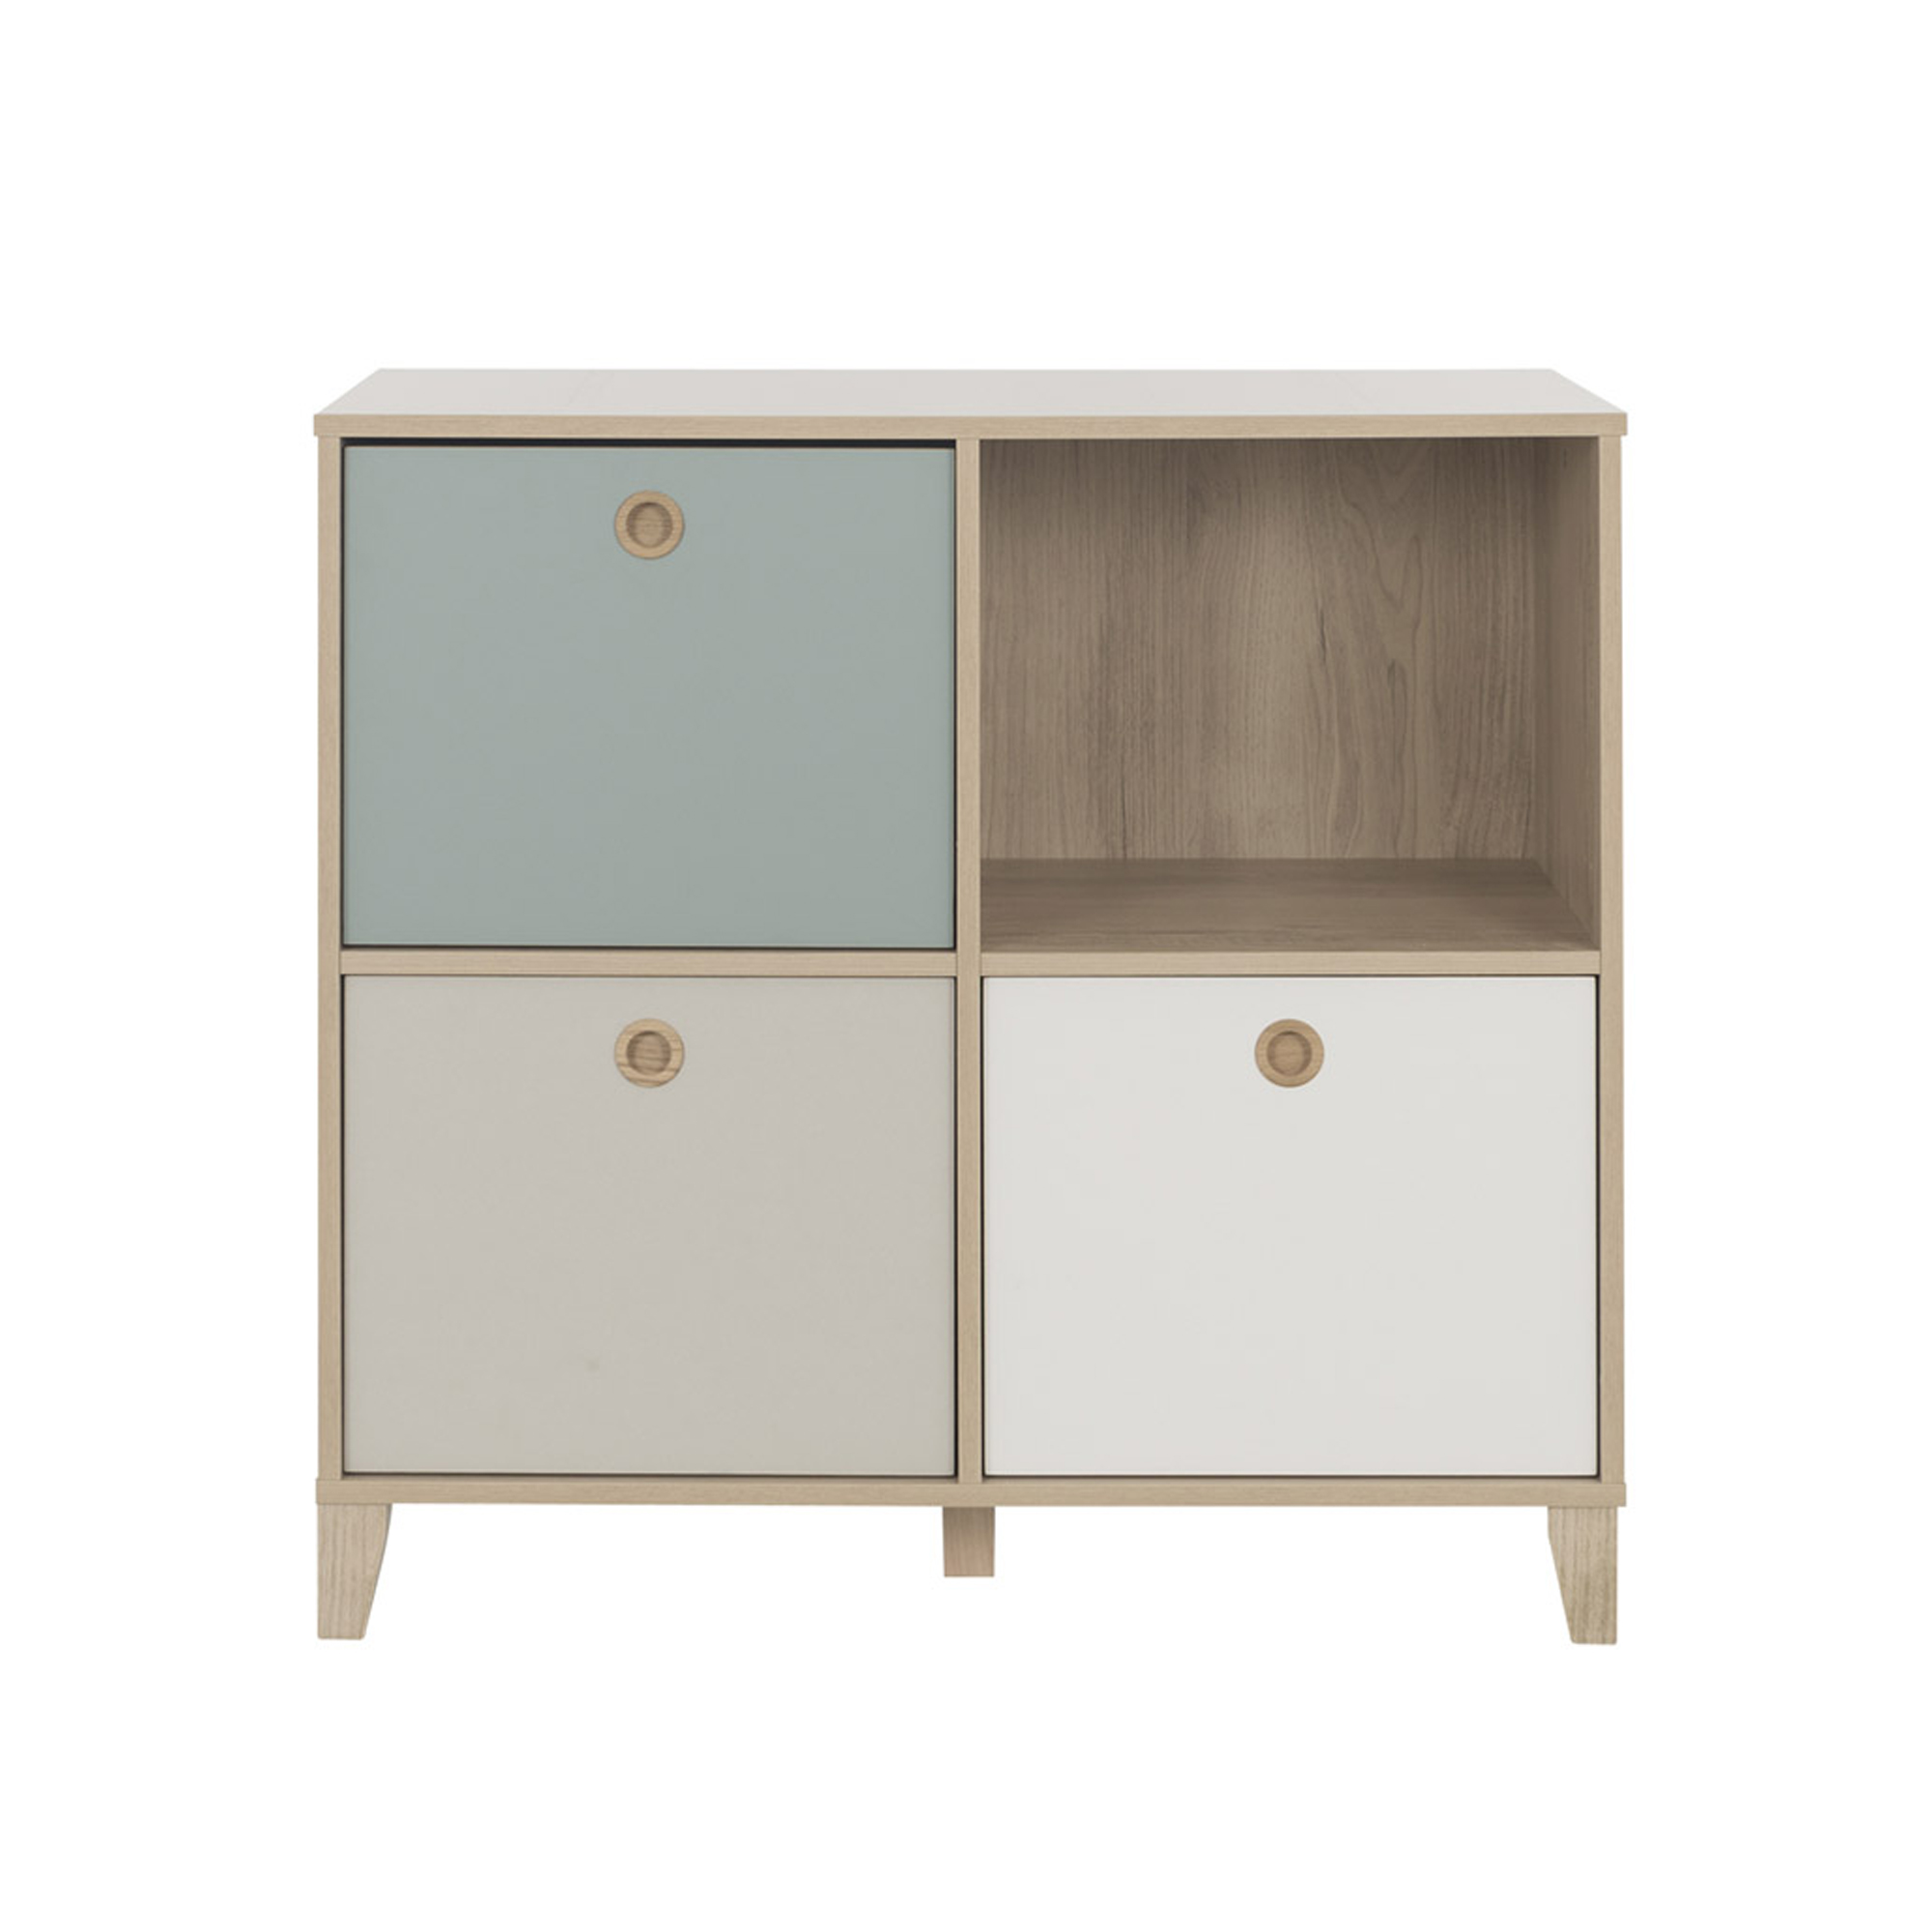 Lora commode 4 niches Blanc  de Galipette